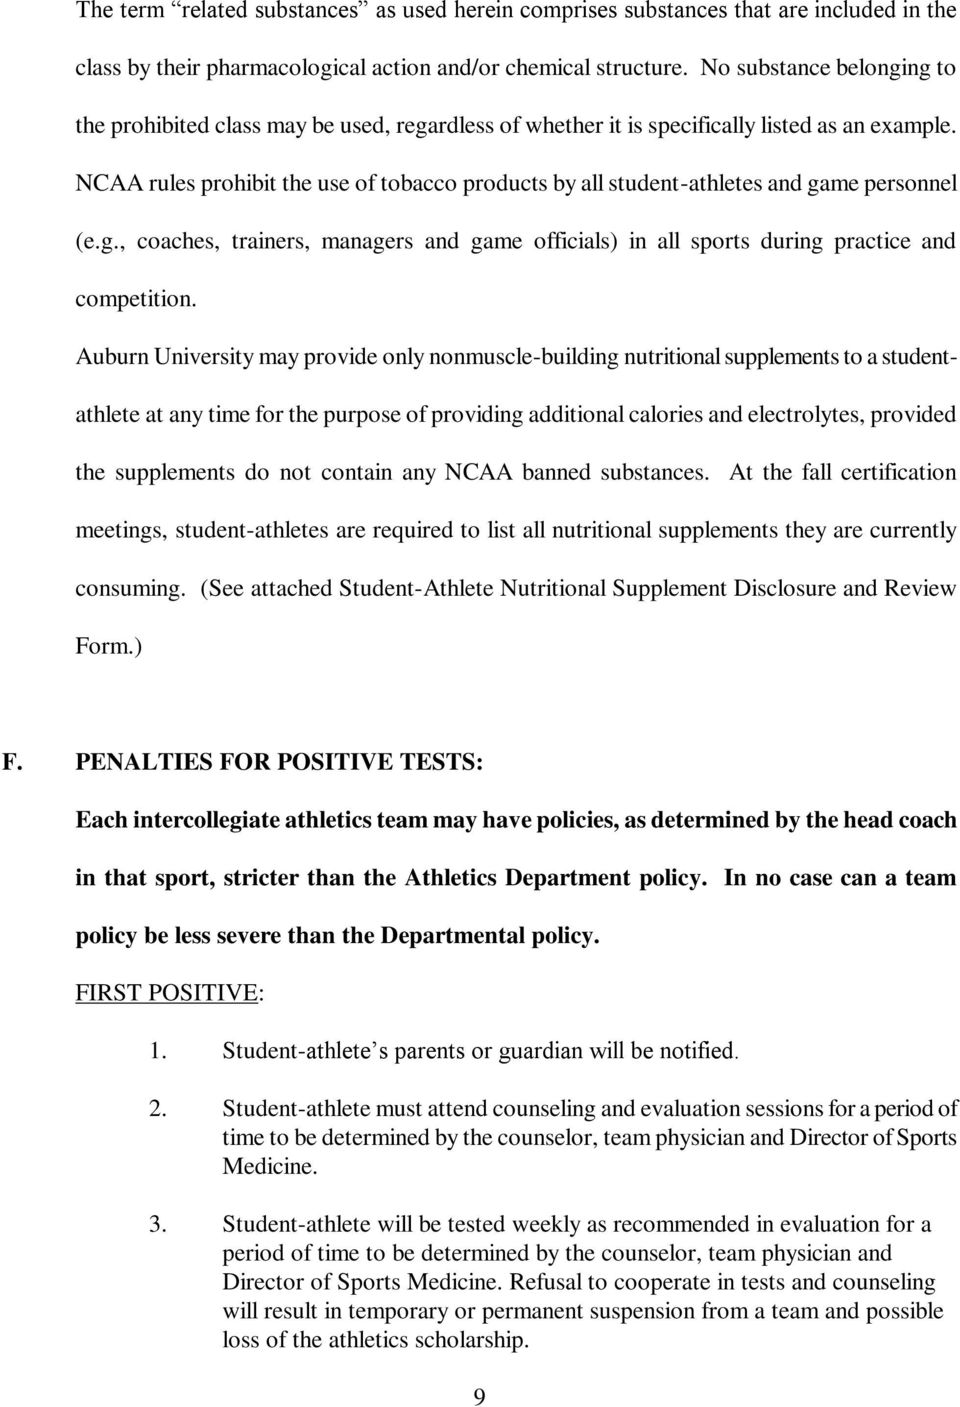 NCAA rules prohibit the use of tobacco products by all student-athletes and game personnel (e.g., coaches, trainers, managers and game officials) in all sports during practice and competition.